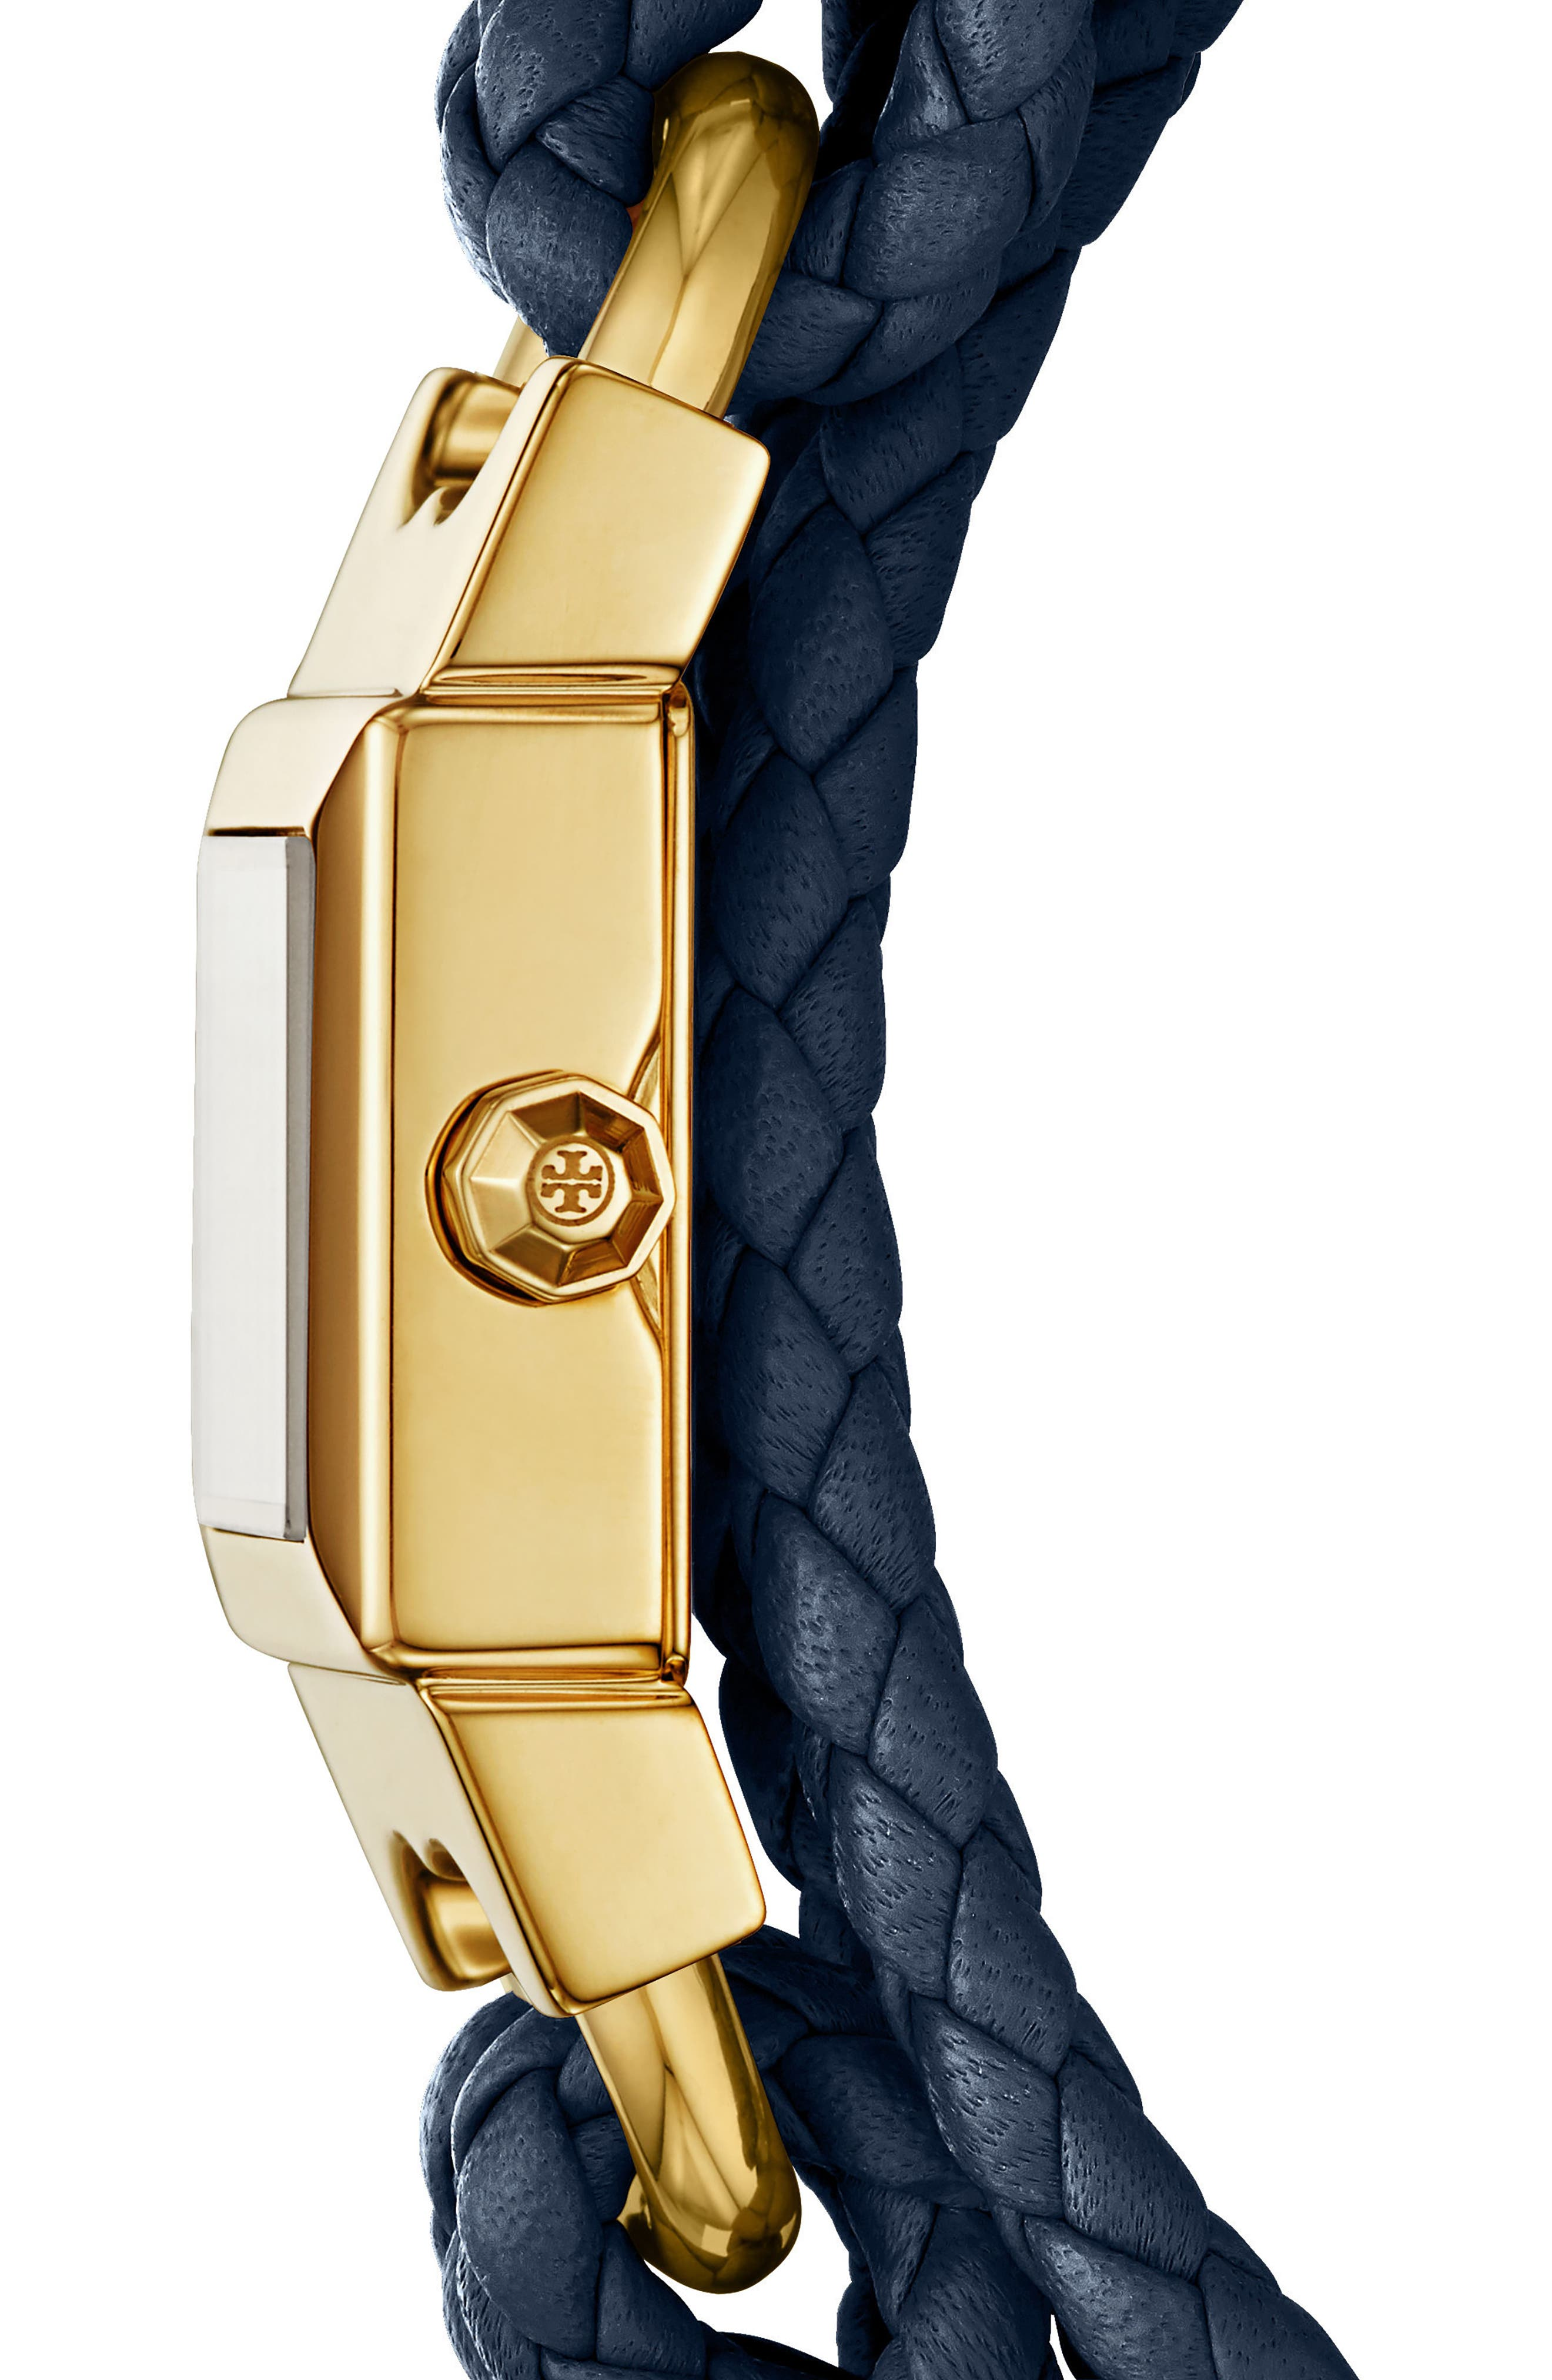 Gemini Link Square Leather Strap Watch, 18mm,                             Alternate thumbnail 2, color,                             Navy/ Cream/ Gold